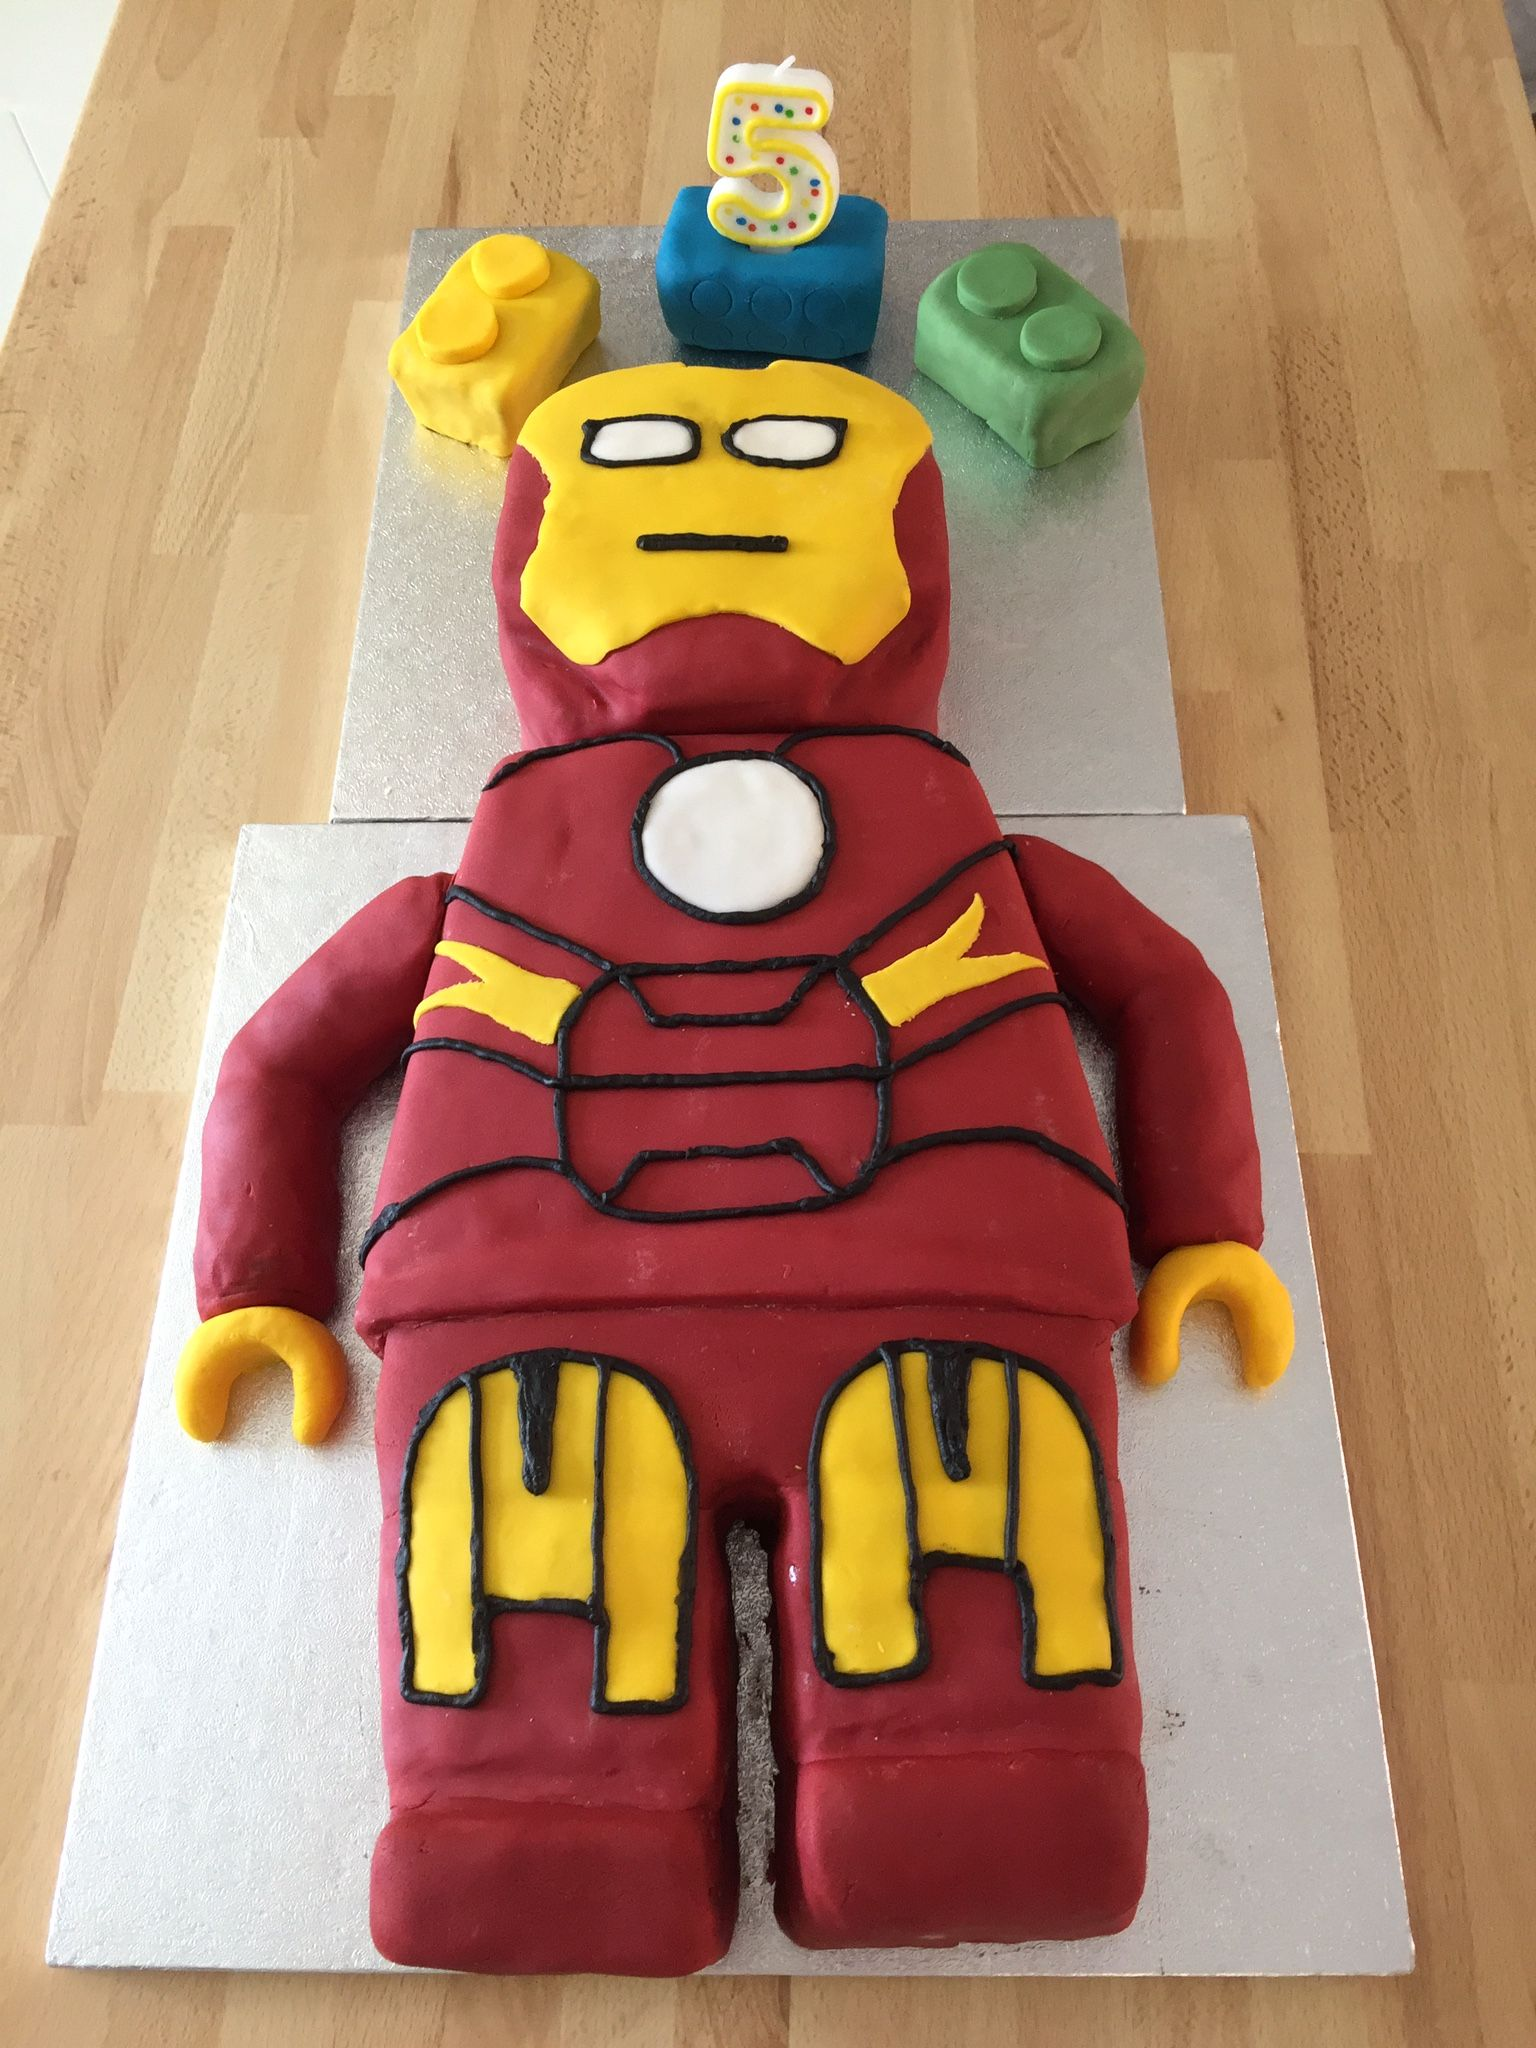 Lego Ironman marvel cake LM5 Pinterest Marvel cake Cake and